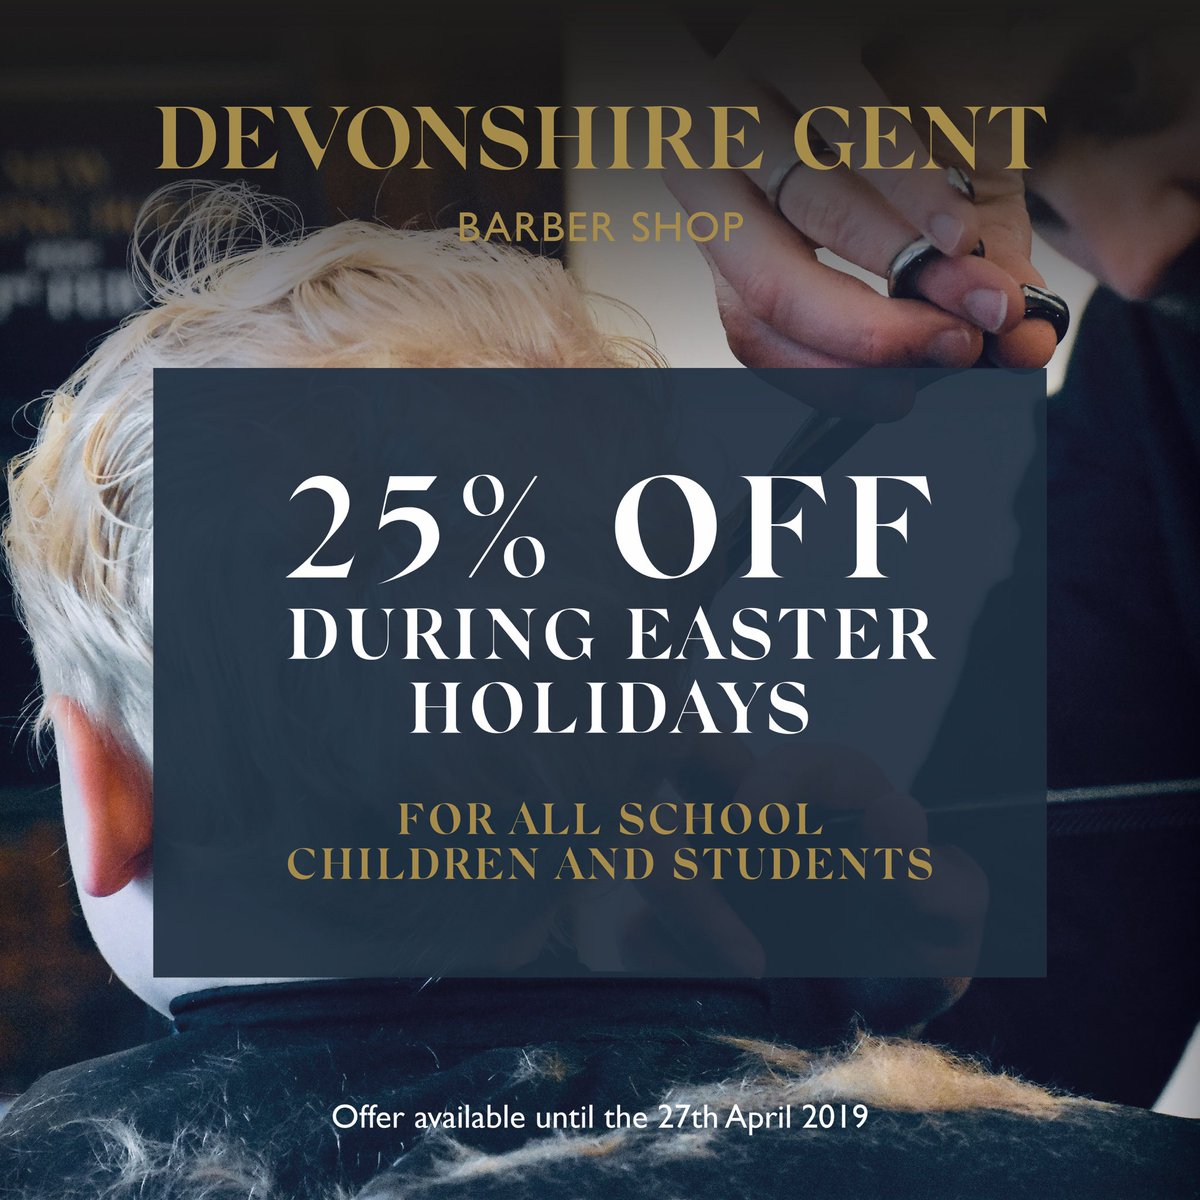 It's still 25% OFF junior and student haircuts all this week at the Devonshire Gent so be sure to come in during the spring school holiday break! #Harrogate #barber #harrogatebarbers #familybarber #springholidays #harrogateschoolspic.twitter.com/1E7DK074Xq